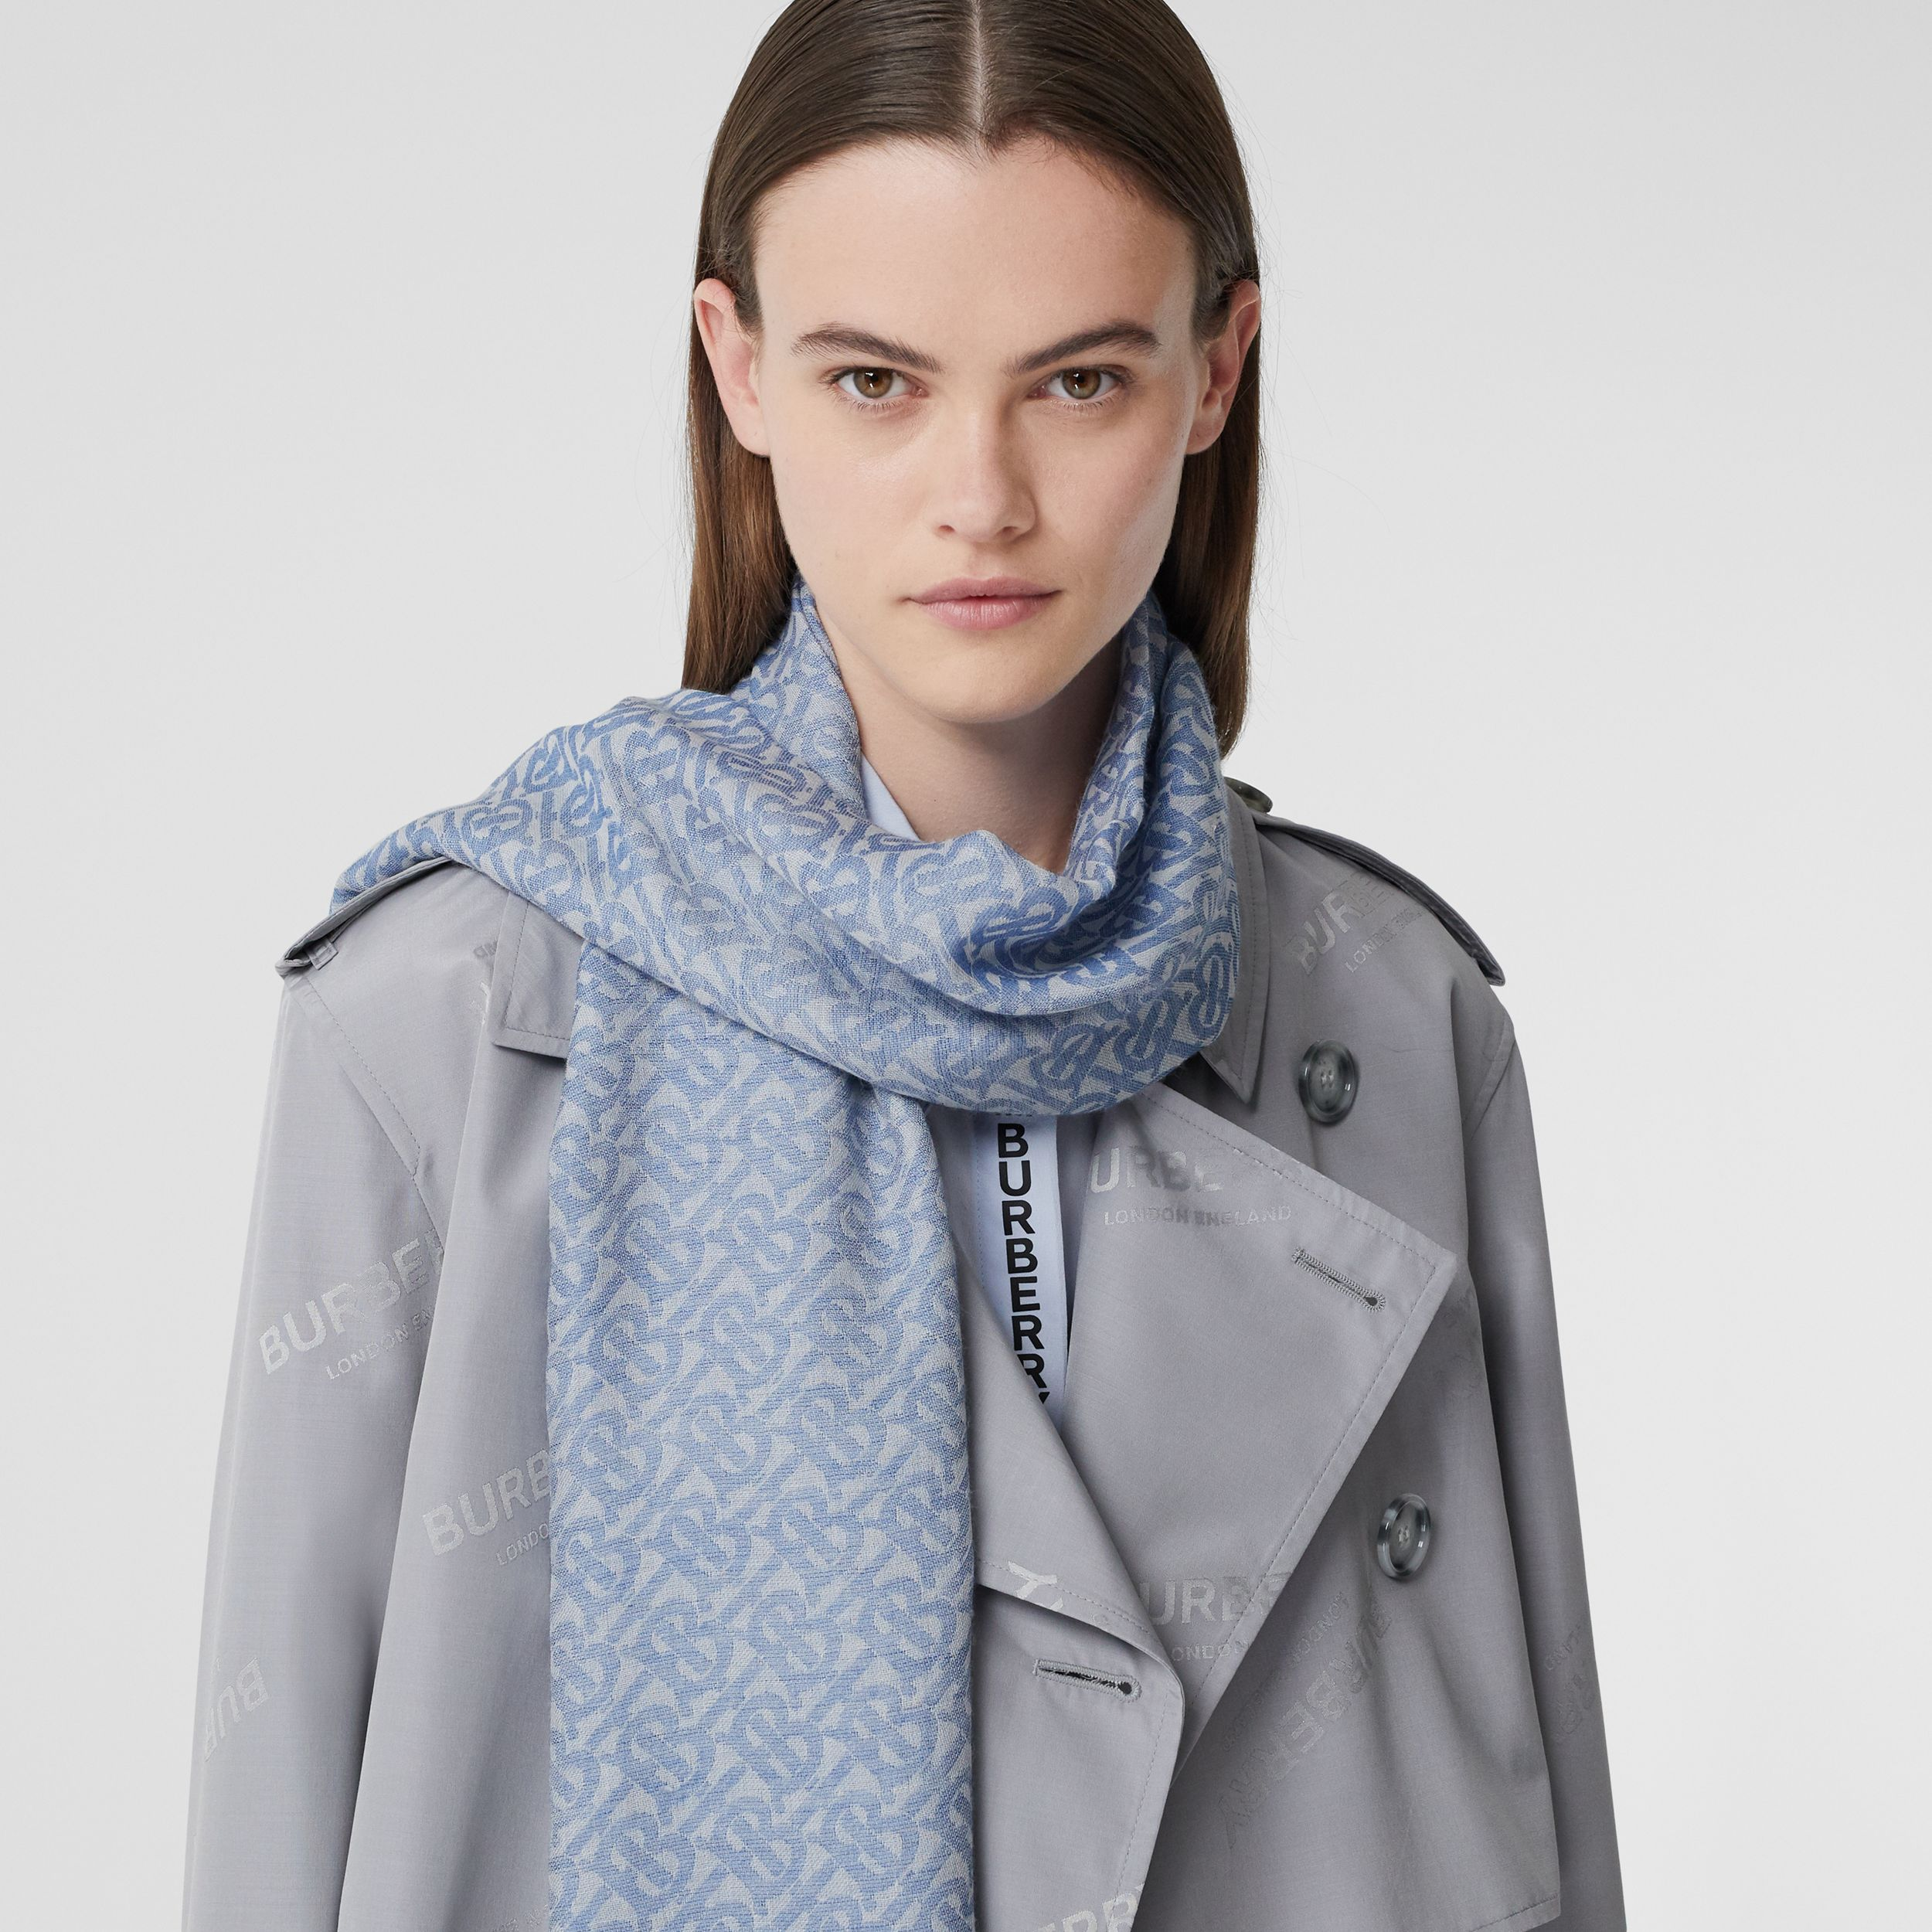 Monogram Wool Silk Jacquard Scarf in Denim Blue | Burberry - 2